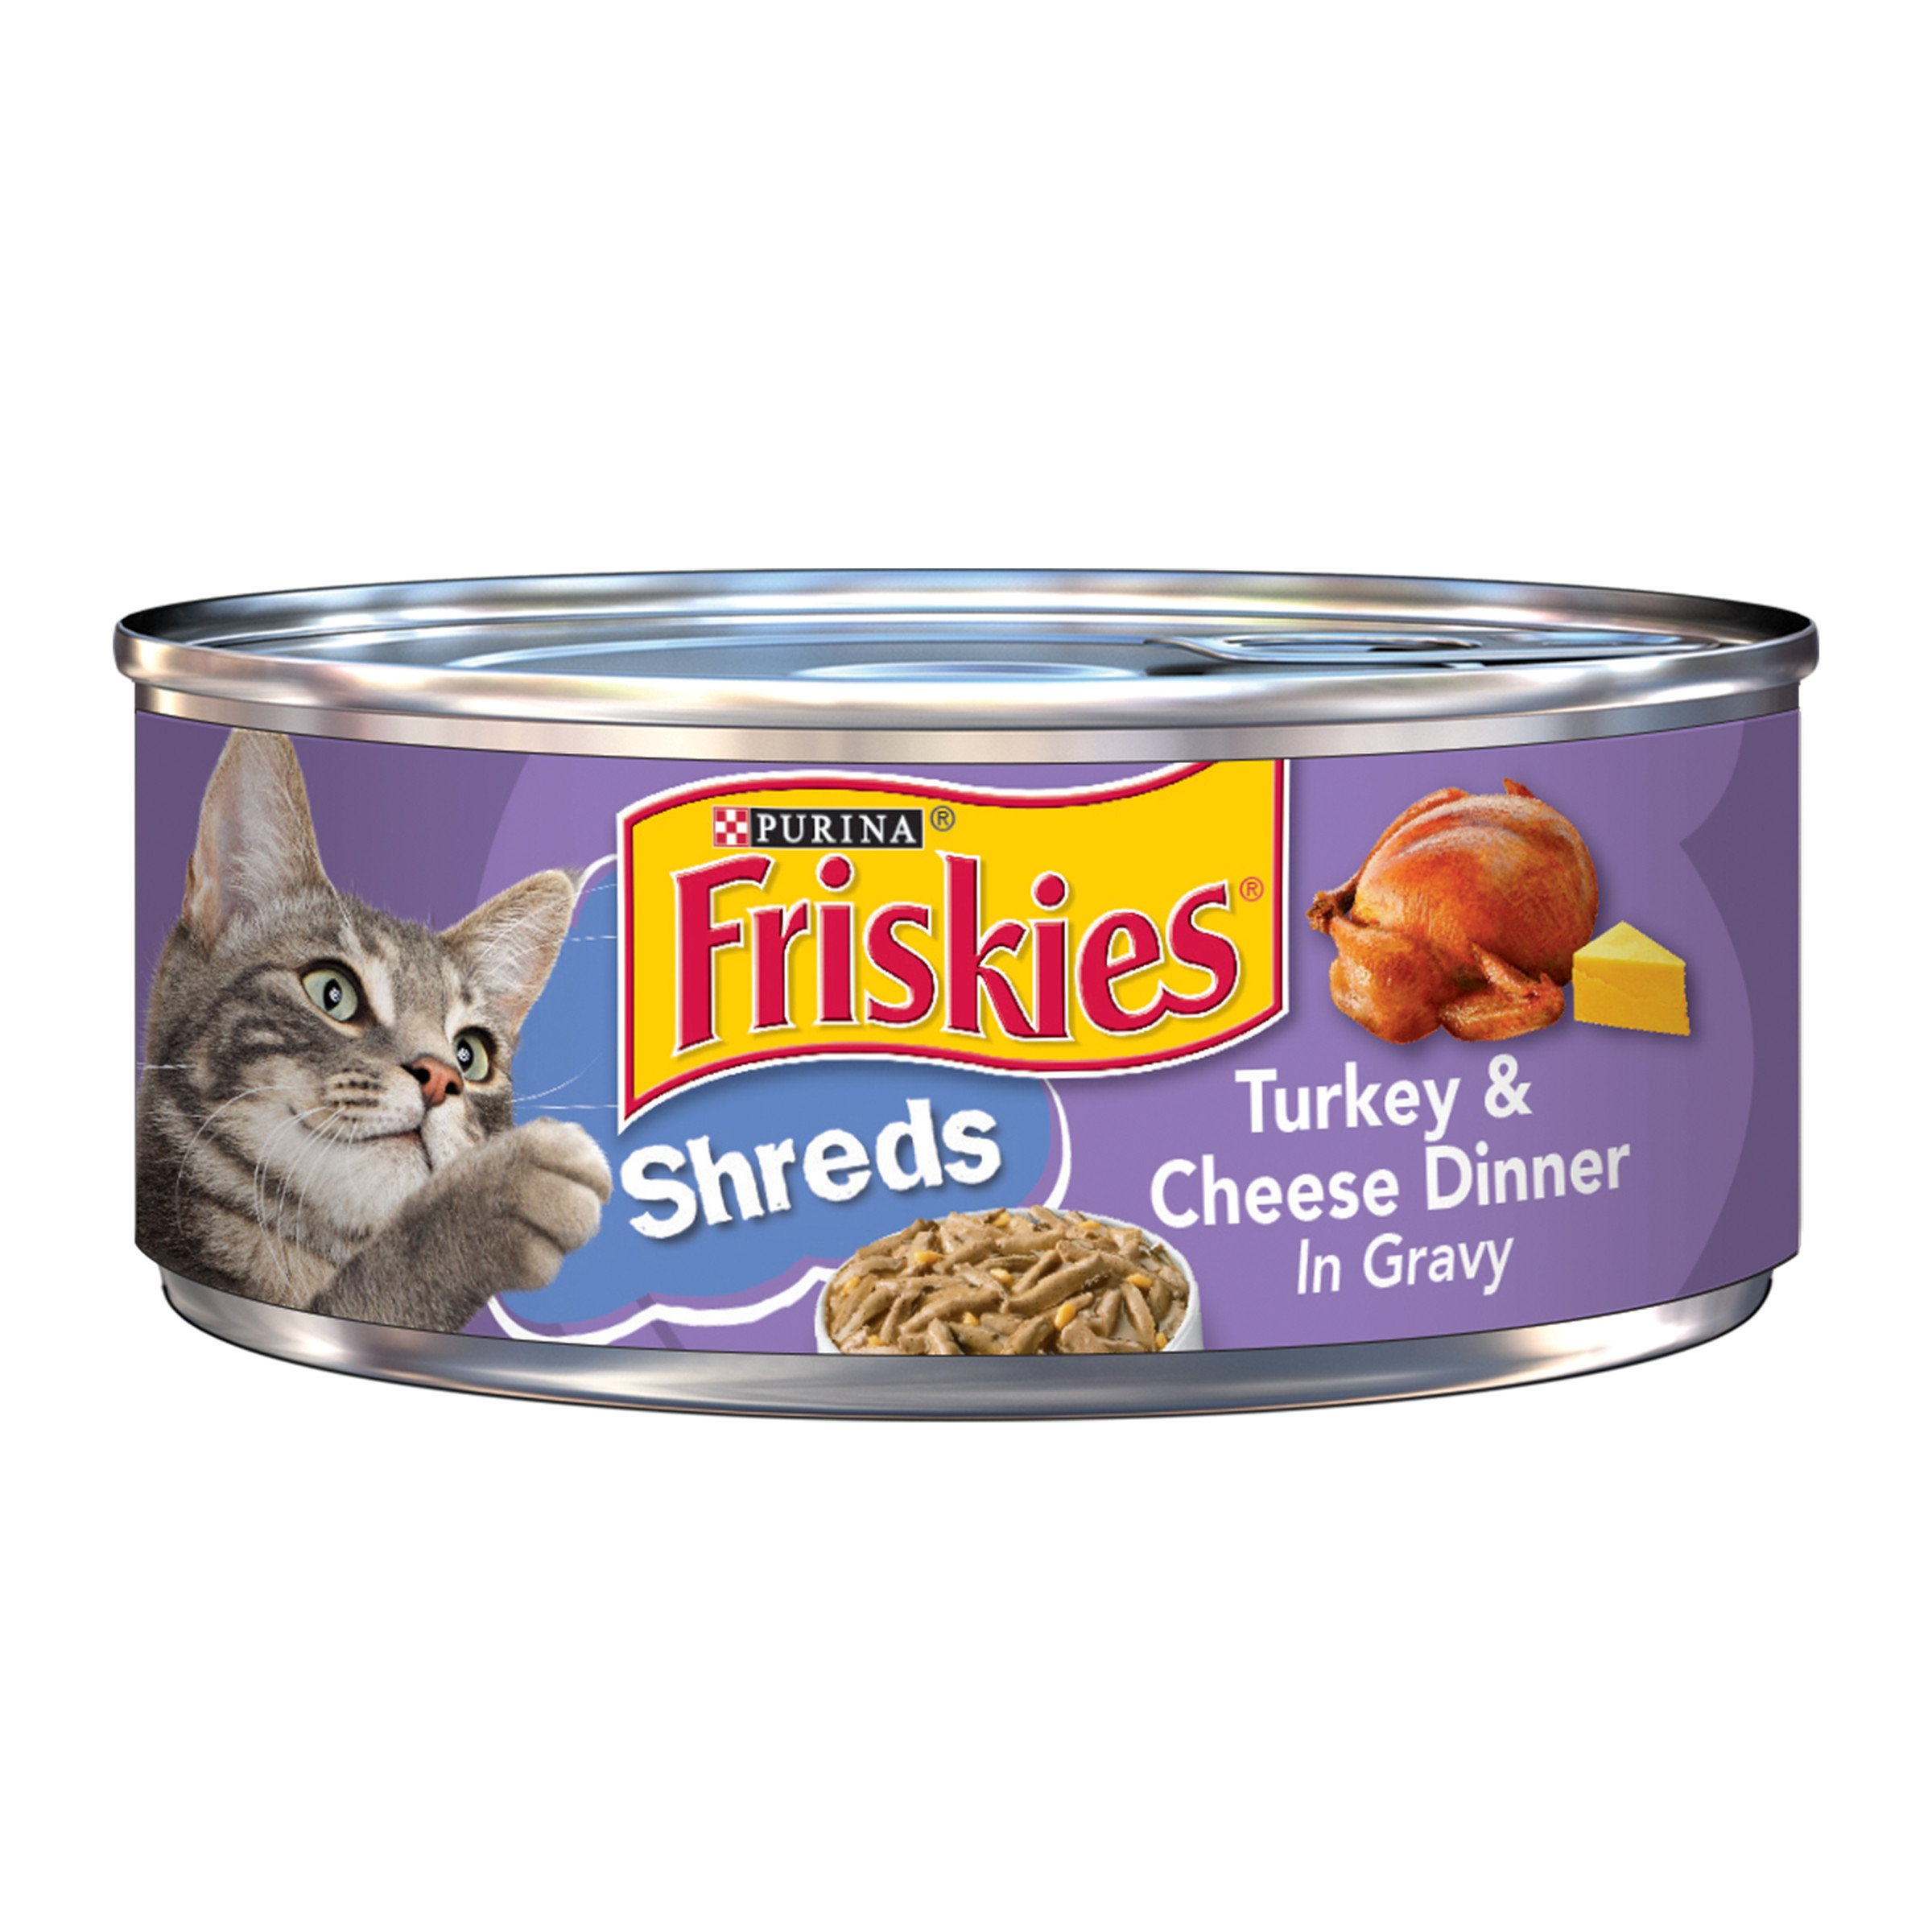 Friskies Wet Cat Food, Savory Shreds, Turkey & Cheese Dinner in Gravy, 5.5-Ounce Can, Pack of 24